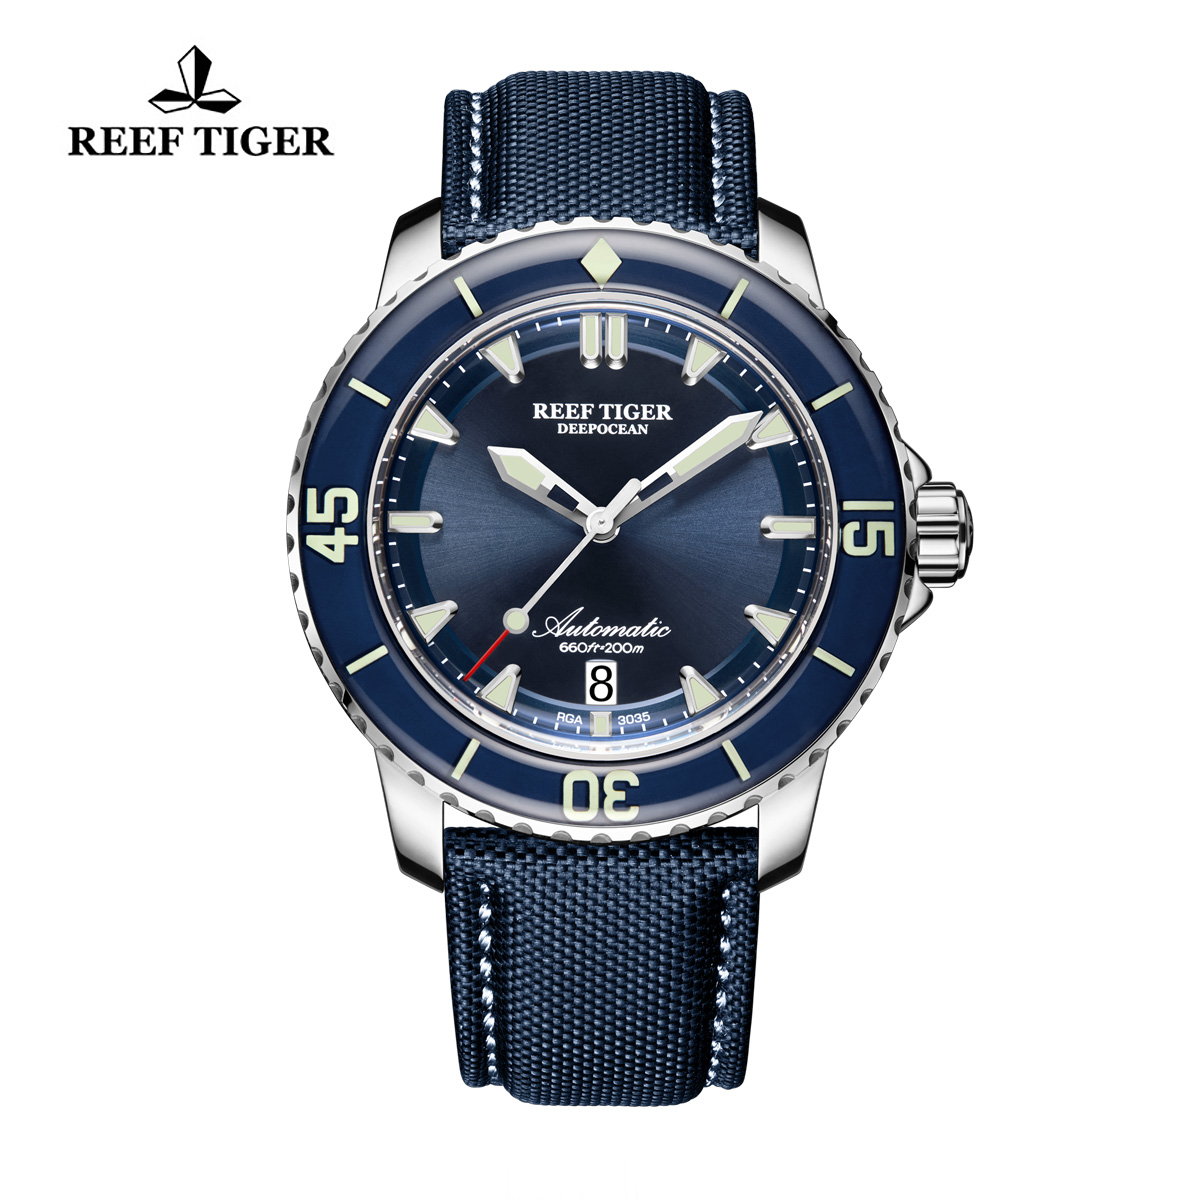 Reef Tiger Deep Ocean Casual Watches Automatic Watch Blue Dial Steel Case RGA3035-YLLW